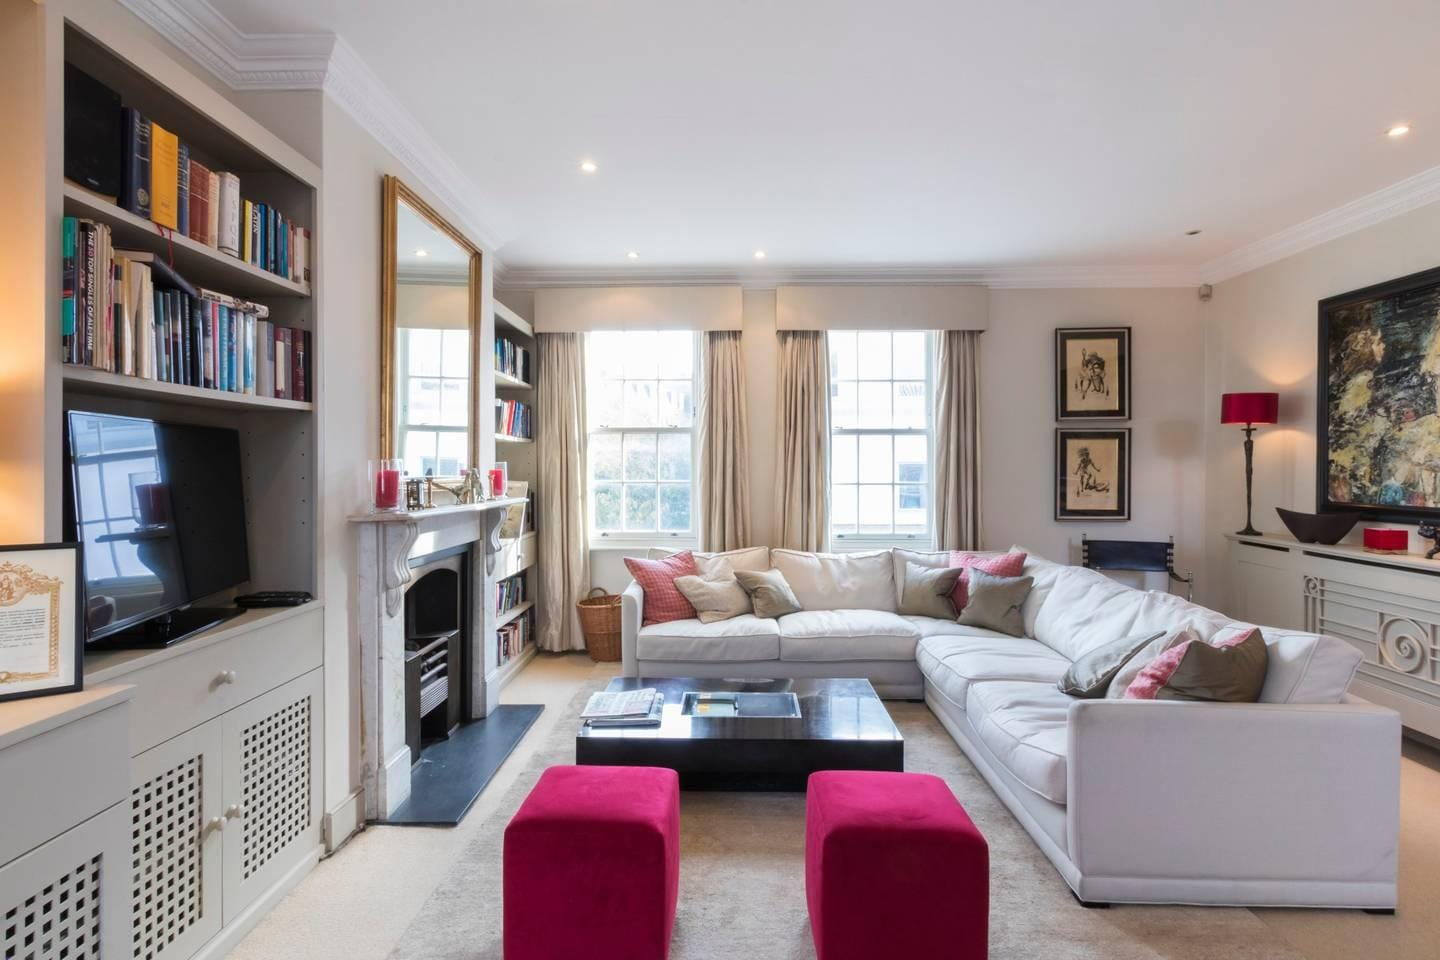 Property Image 1 - Stunning Battersea Three-Bedroom Townhouse with Unique Garden